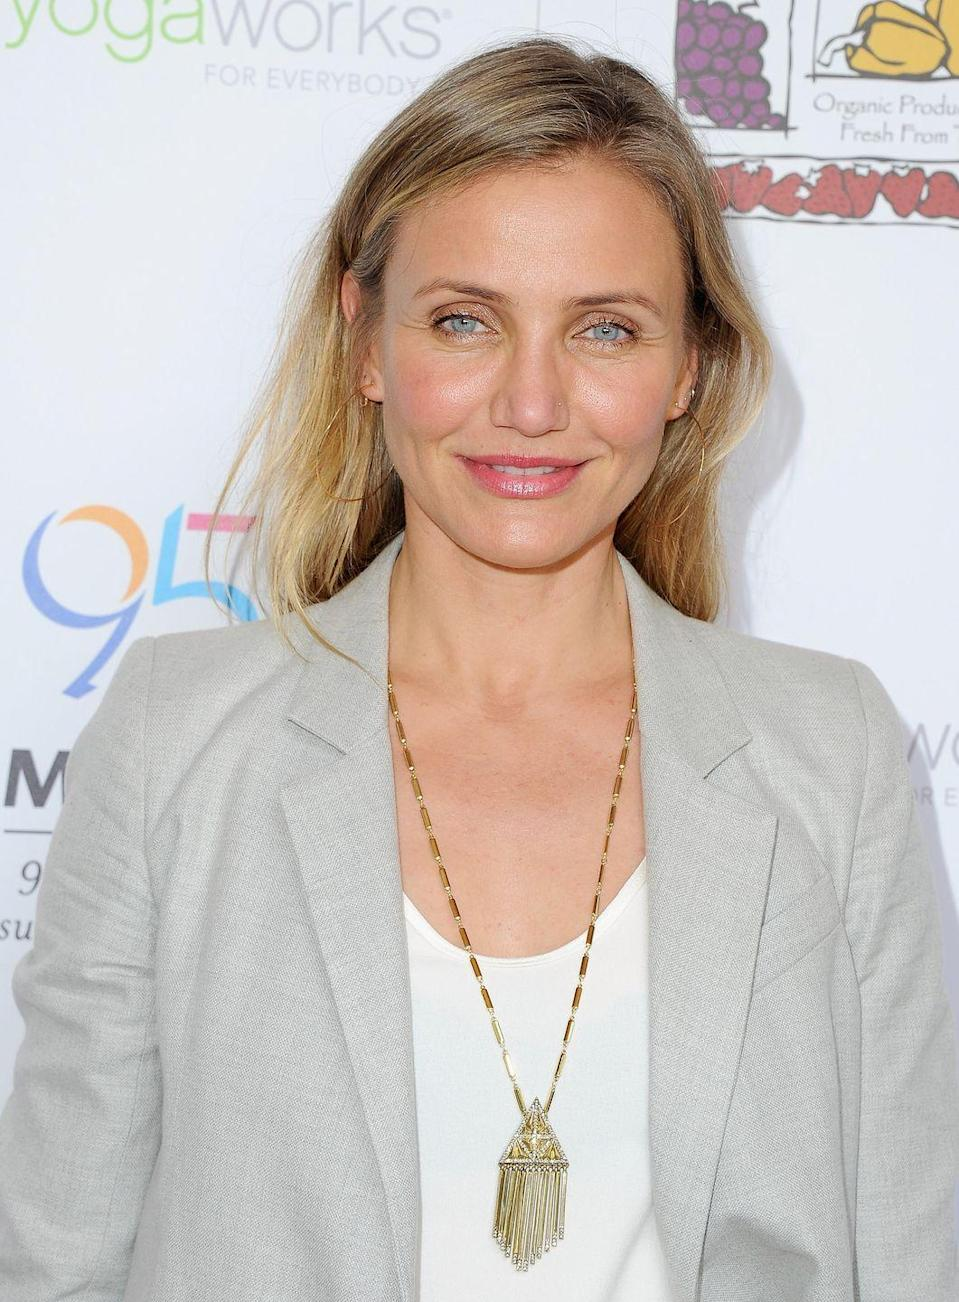 """<p>Ever wonder what Cameron Diaz eats for breakfast to get that body? According to an interview with <a href=""""https://www.bonappetit.com/columns/my-morning-routine/article/cameron-diaz-longevity-book-food"""" rel=""""nofollow noopener"""" target=""""_blank"""" data-ylk=""""slk:Bon Appétit"""" class=""""link rapid-noclick-resp""""><em>Bon Appétit</em></a>: protein. """"I just put something in my stomach before my workout—usually scrambled eggs, toast, an avocado, an apple with almond butter, <a href=""""https://www.prevention.com/food-nutrition/recipes/g25253175/overnight-oats-recipes/"""" rel=""""nofollow noopener"""" target=""""_blank"""" data-ylk=""""slk:overnight oats"""" class=""""link rapid-noclick-resp"""">overnight oats</a>, or a piece of chicken,"""" she said.</p>"""